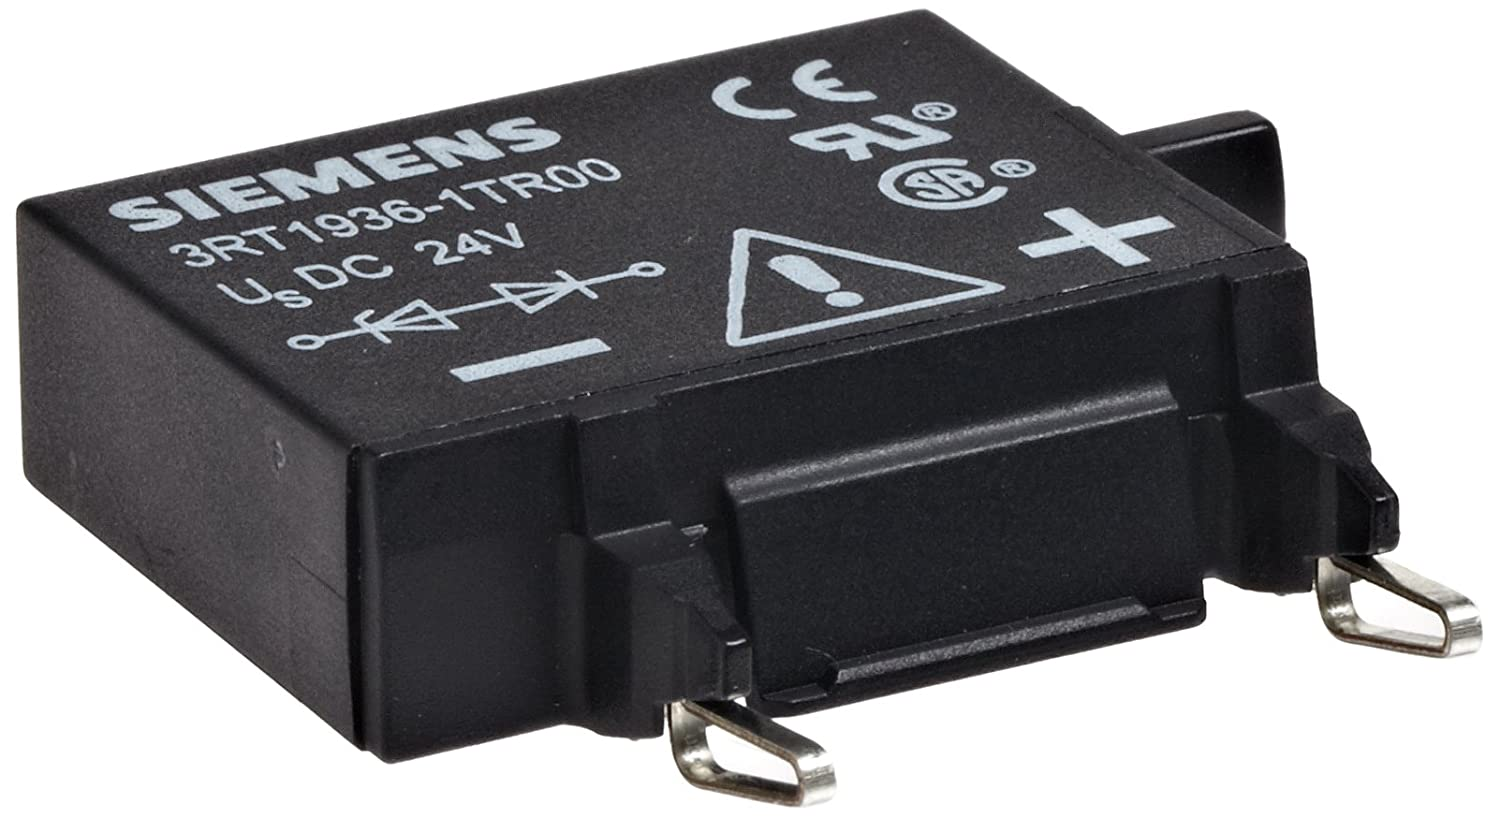 Diode Assembly Siemens 3RT19 36-1TR00 Surge Suppressor S3 Size S2 24VDC Rated Control Supply Voltage 3RT19361TR00 Plugging Onto Bottom